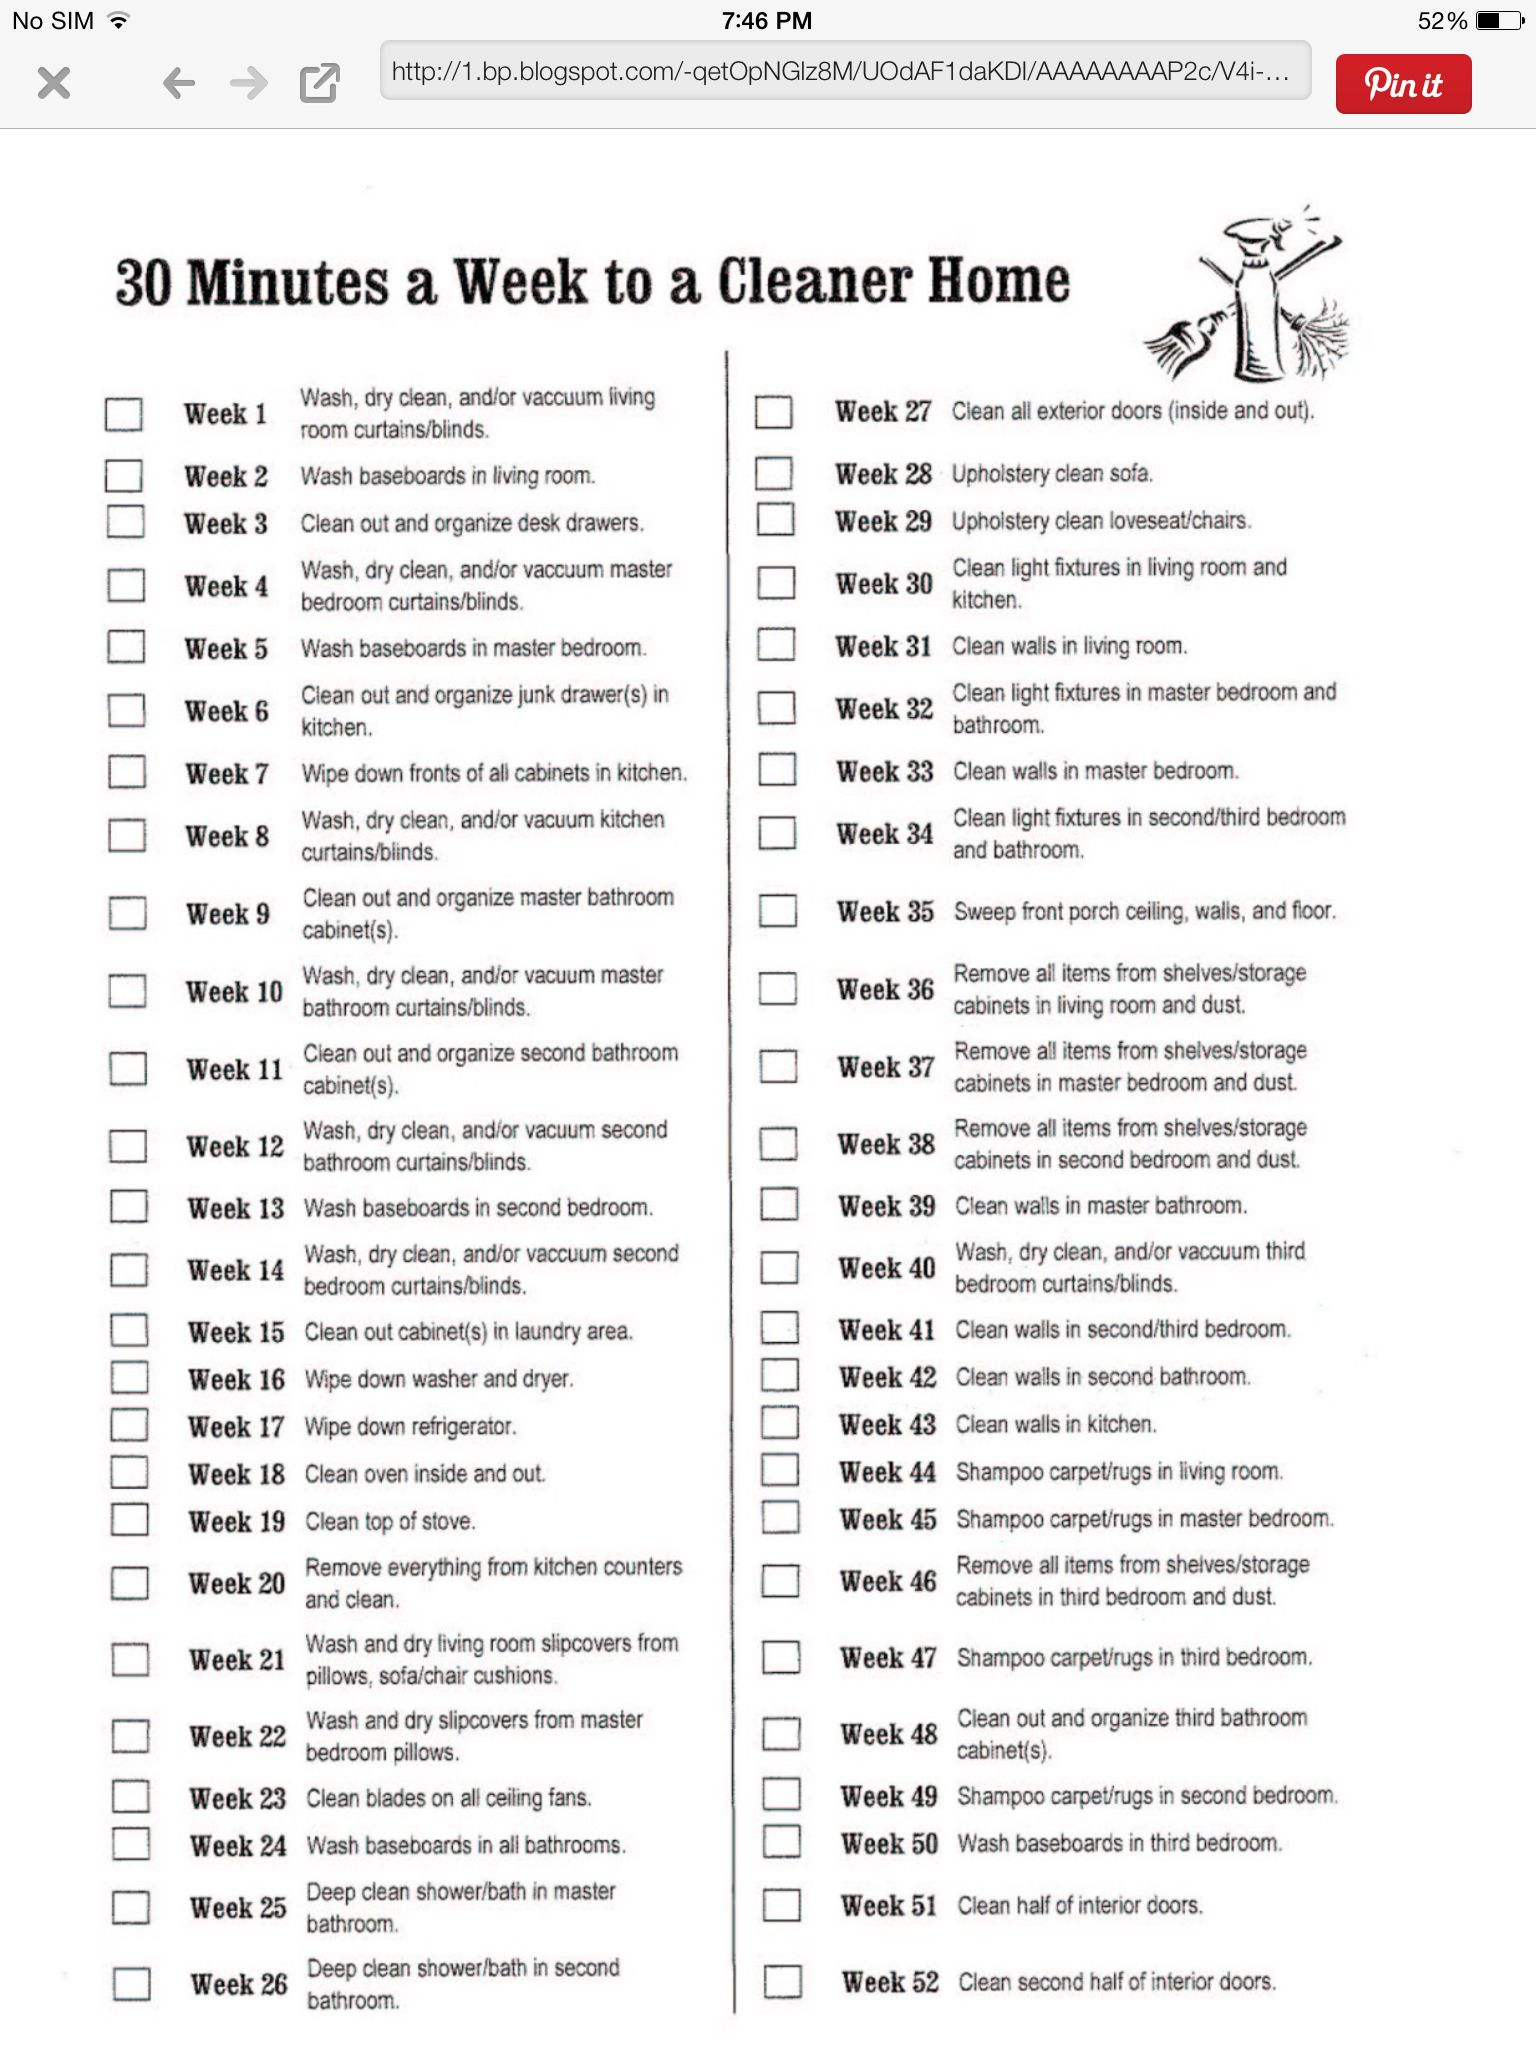 Weekly Deep Clean Schedule Tips